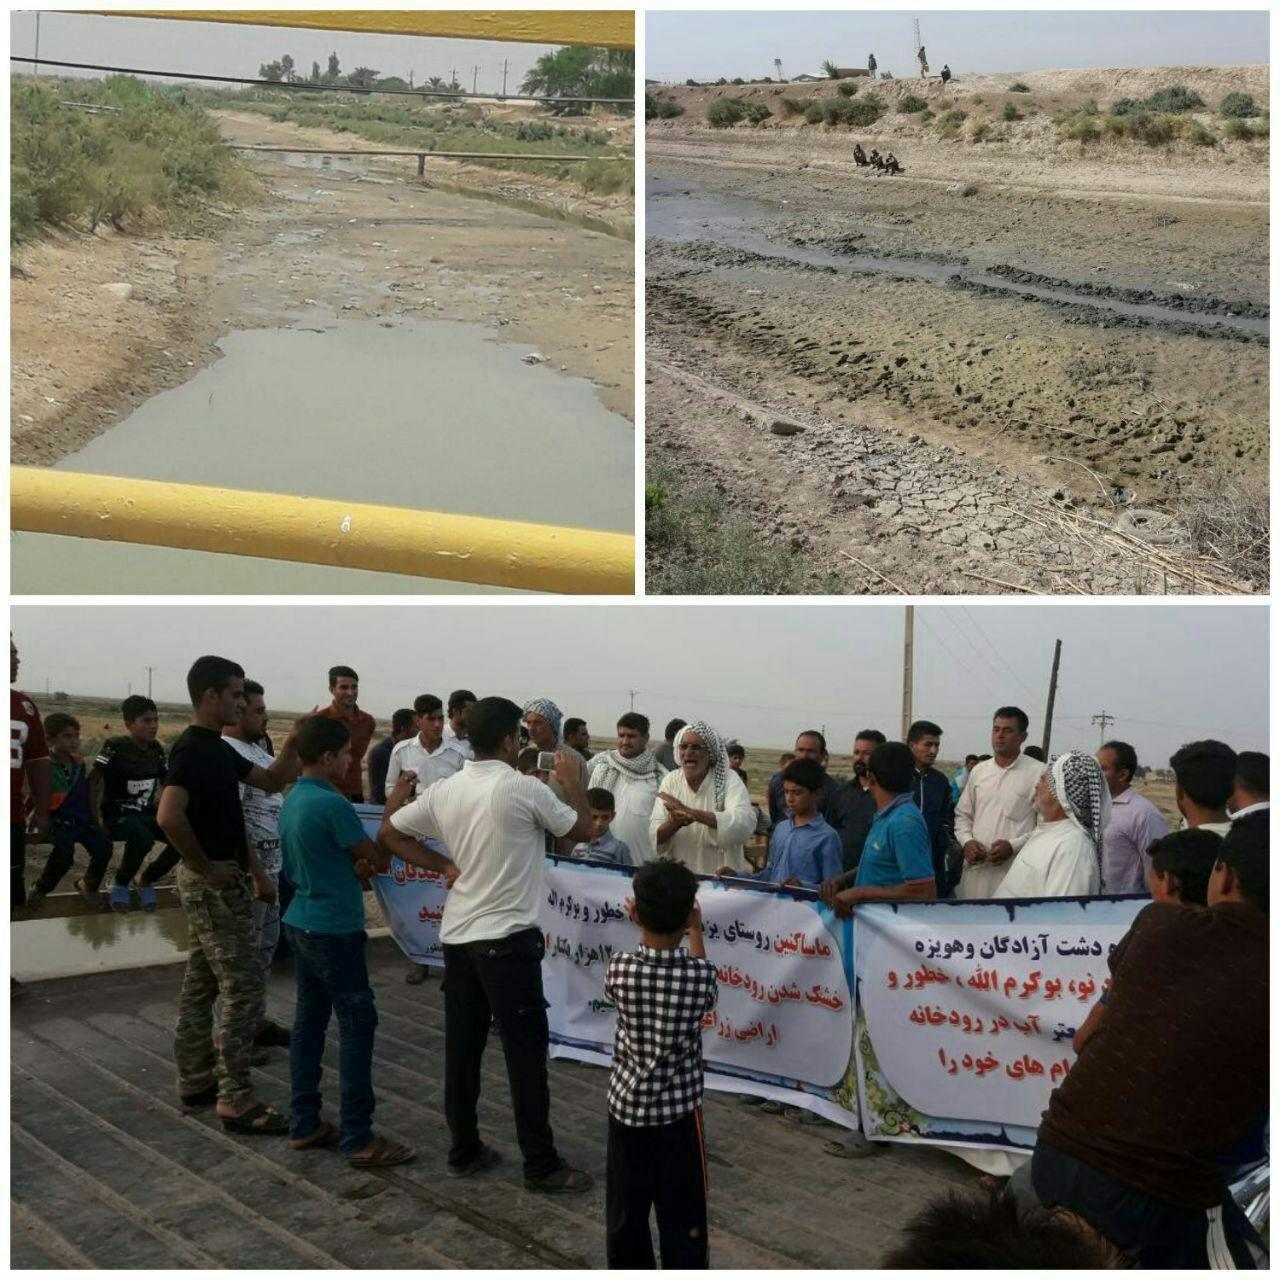 Karkheh: Residents of 4 vilages gathering to protest the water shortage and the drying of Karkheh river